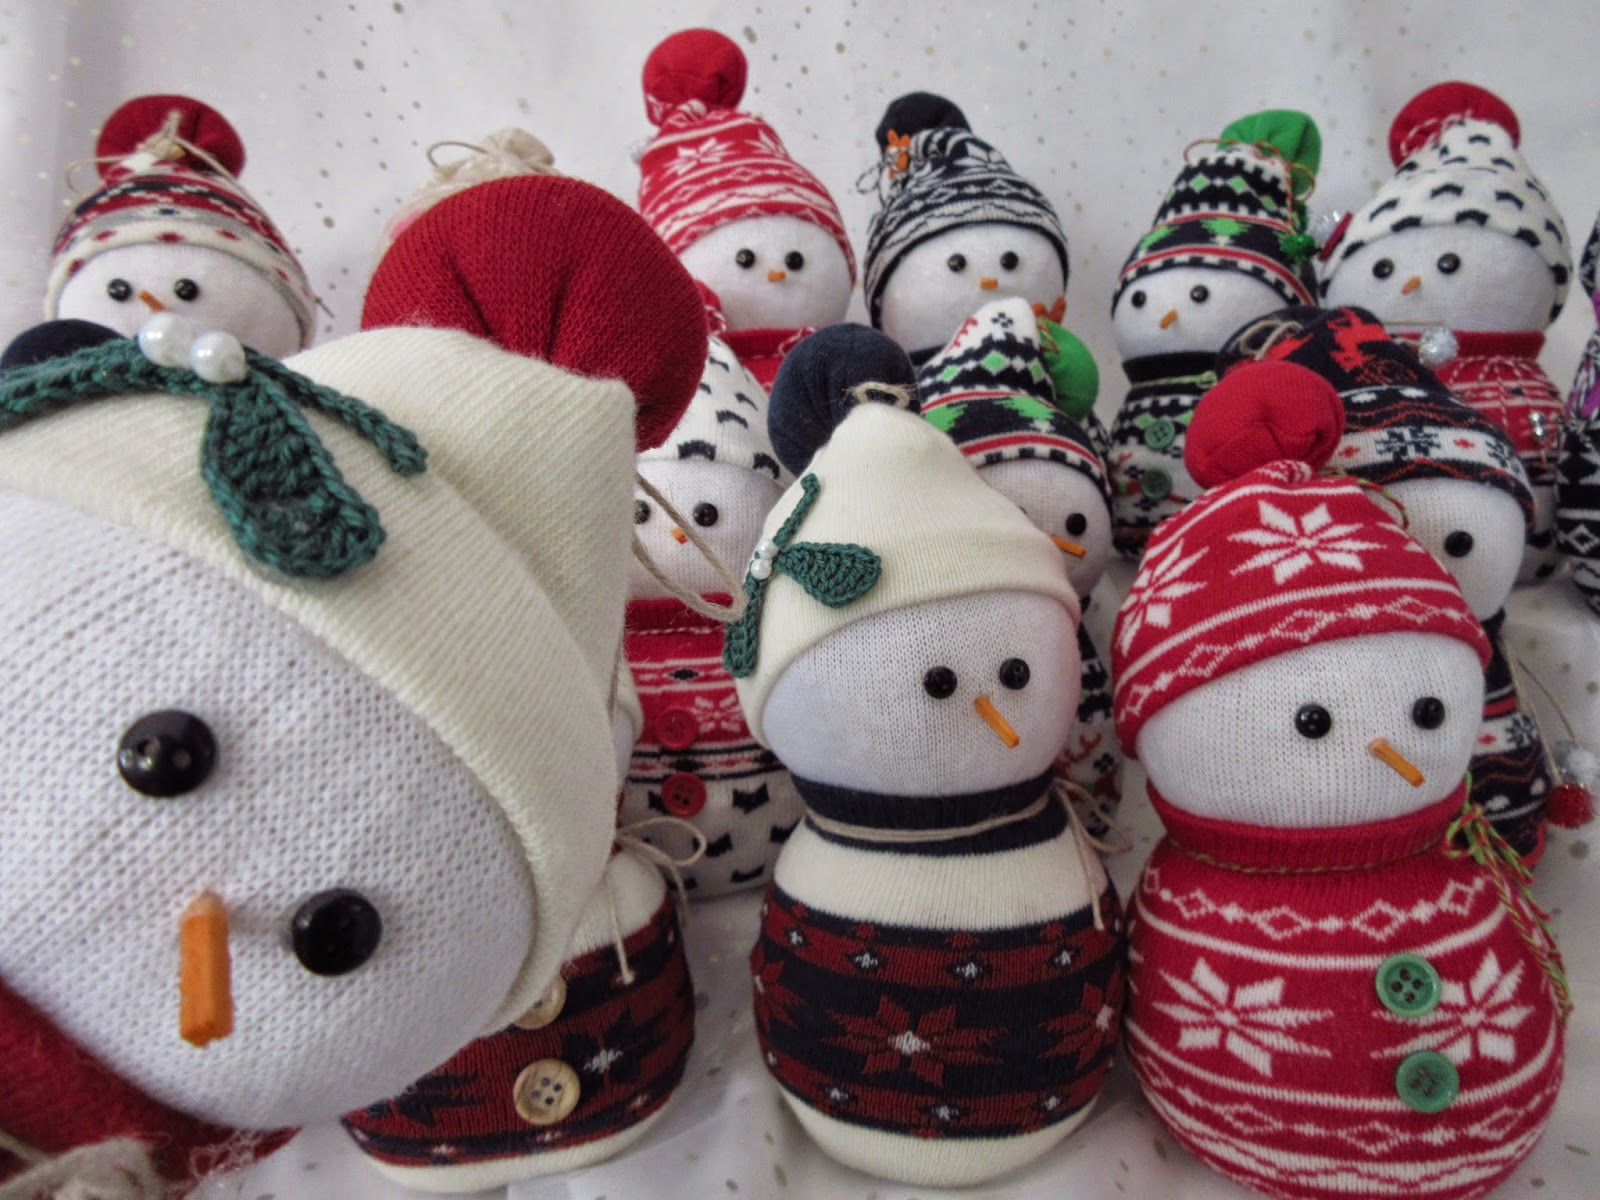 Crowd of snowmen made from socks filled with rice with button eyes and craft stick noses.